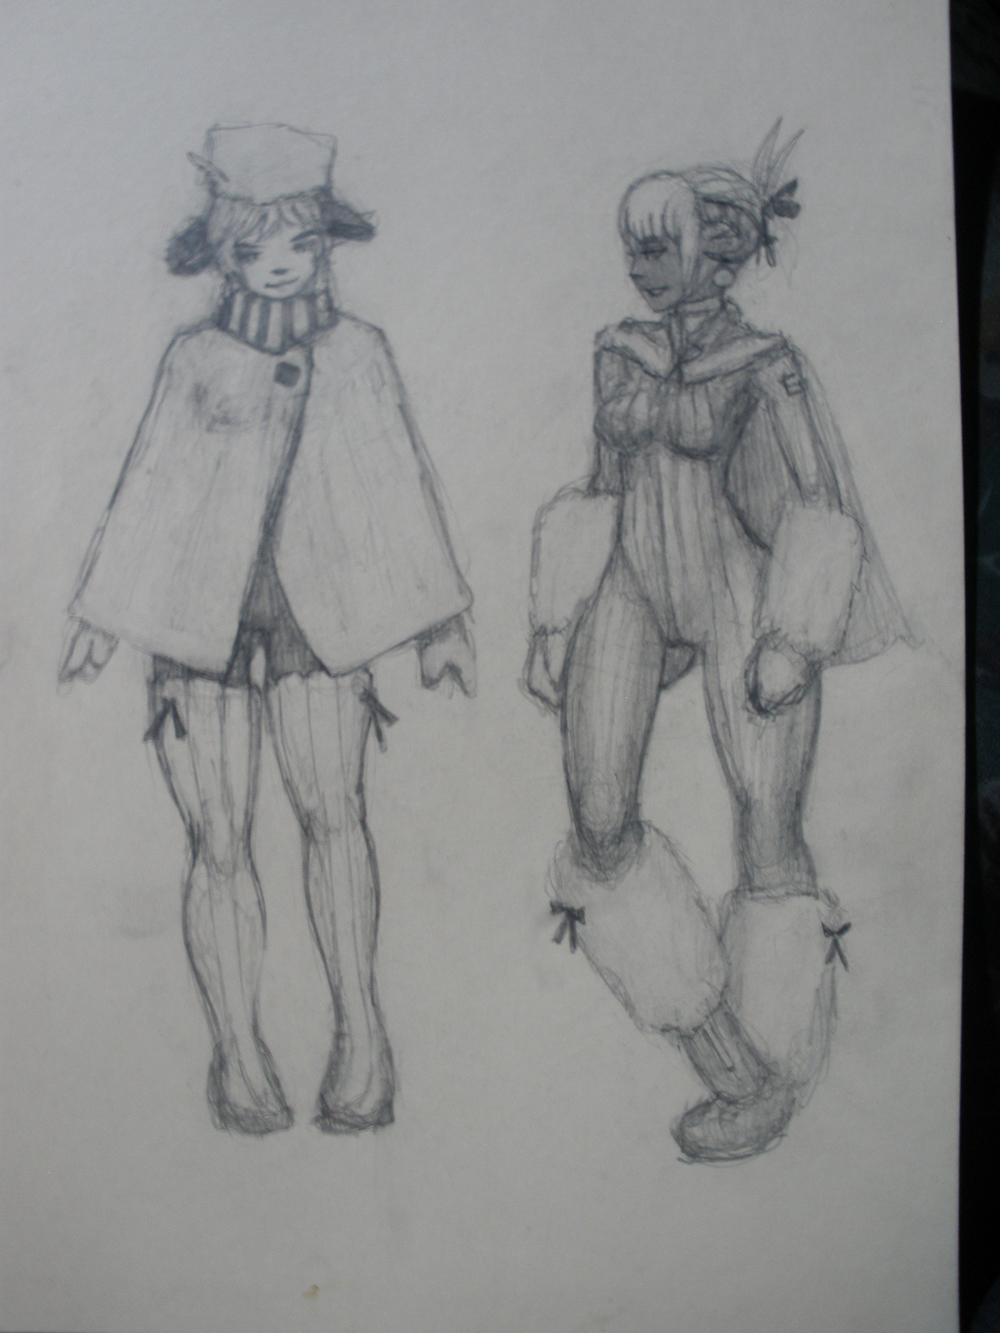 June and July winter clothes